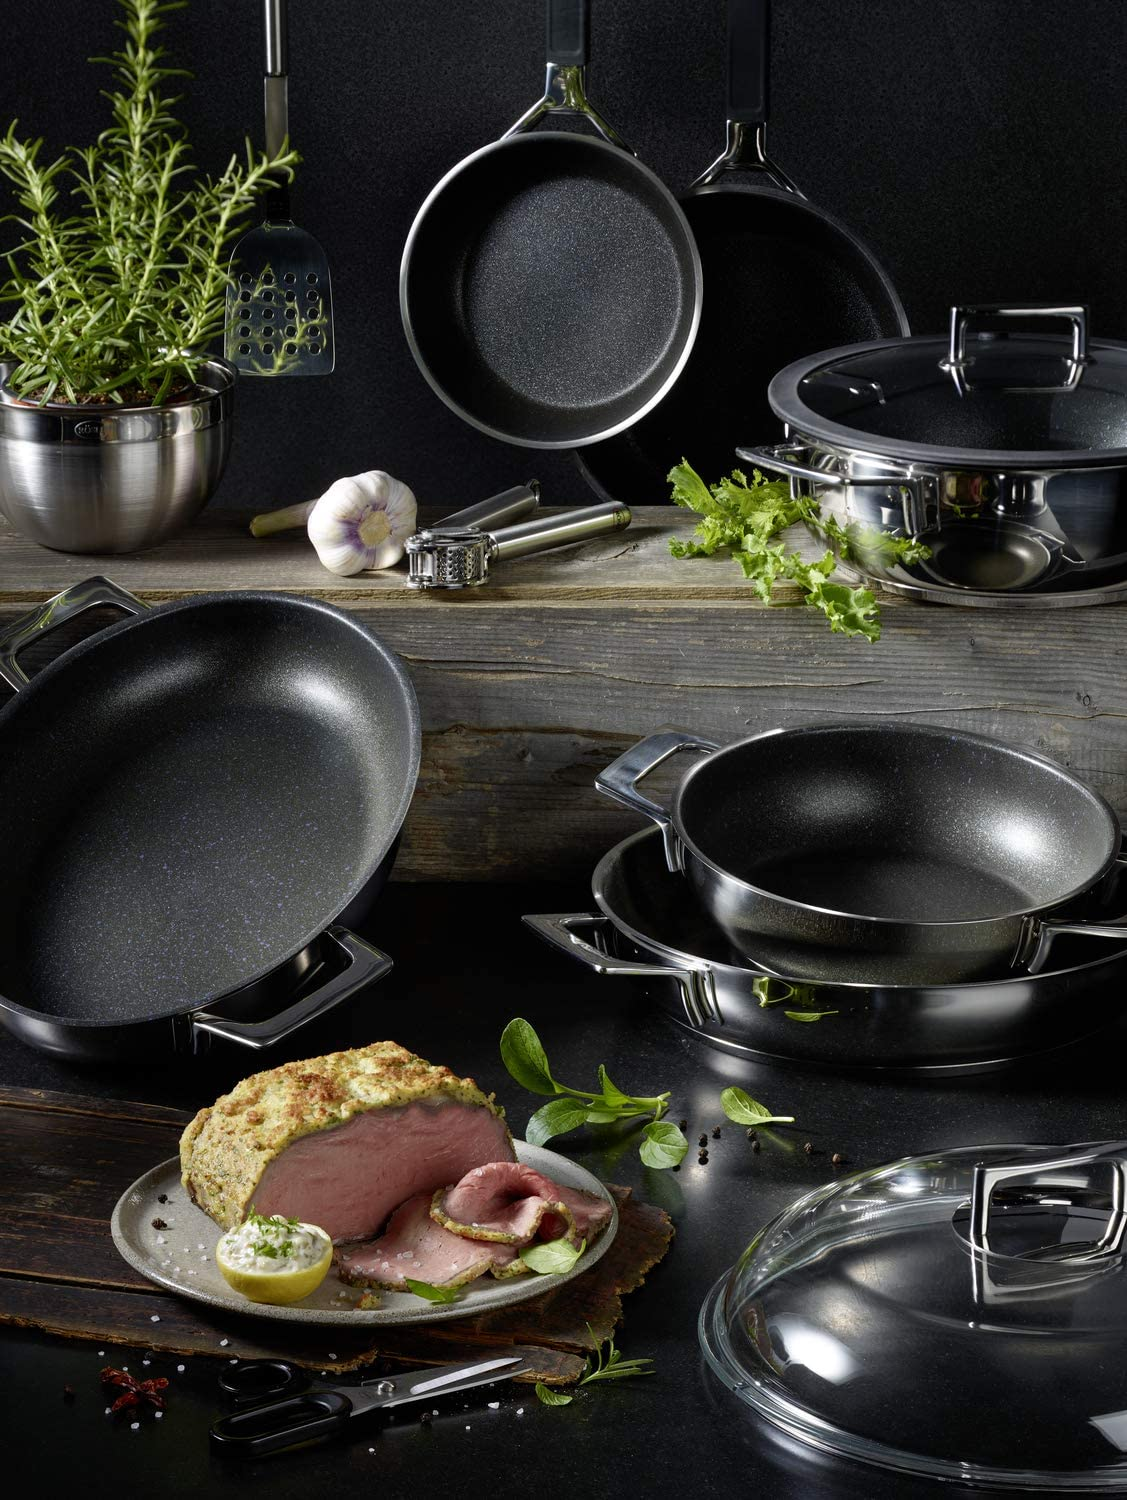 28/Inch /Silver//Black//Blue R/ösle Silence 91517/Serving Pan Stainless Steel with Non-Stick Coating Proresist/